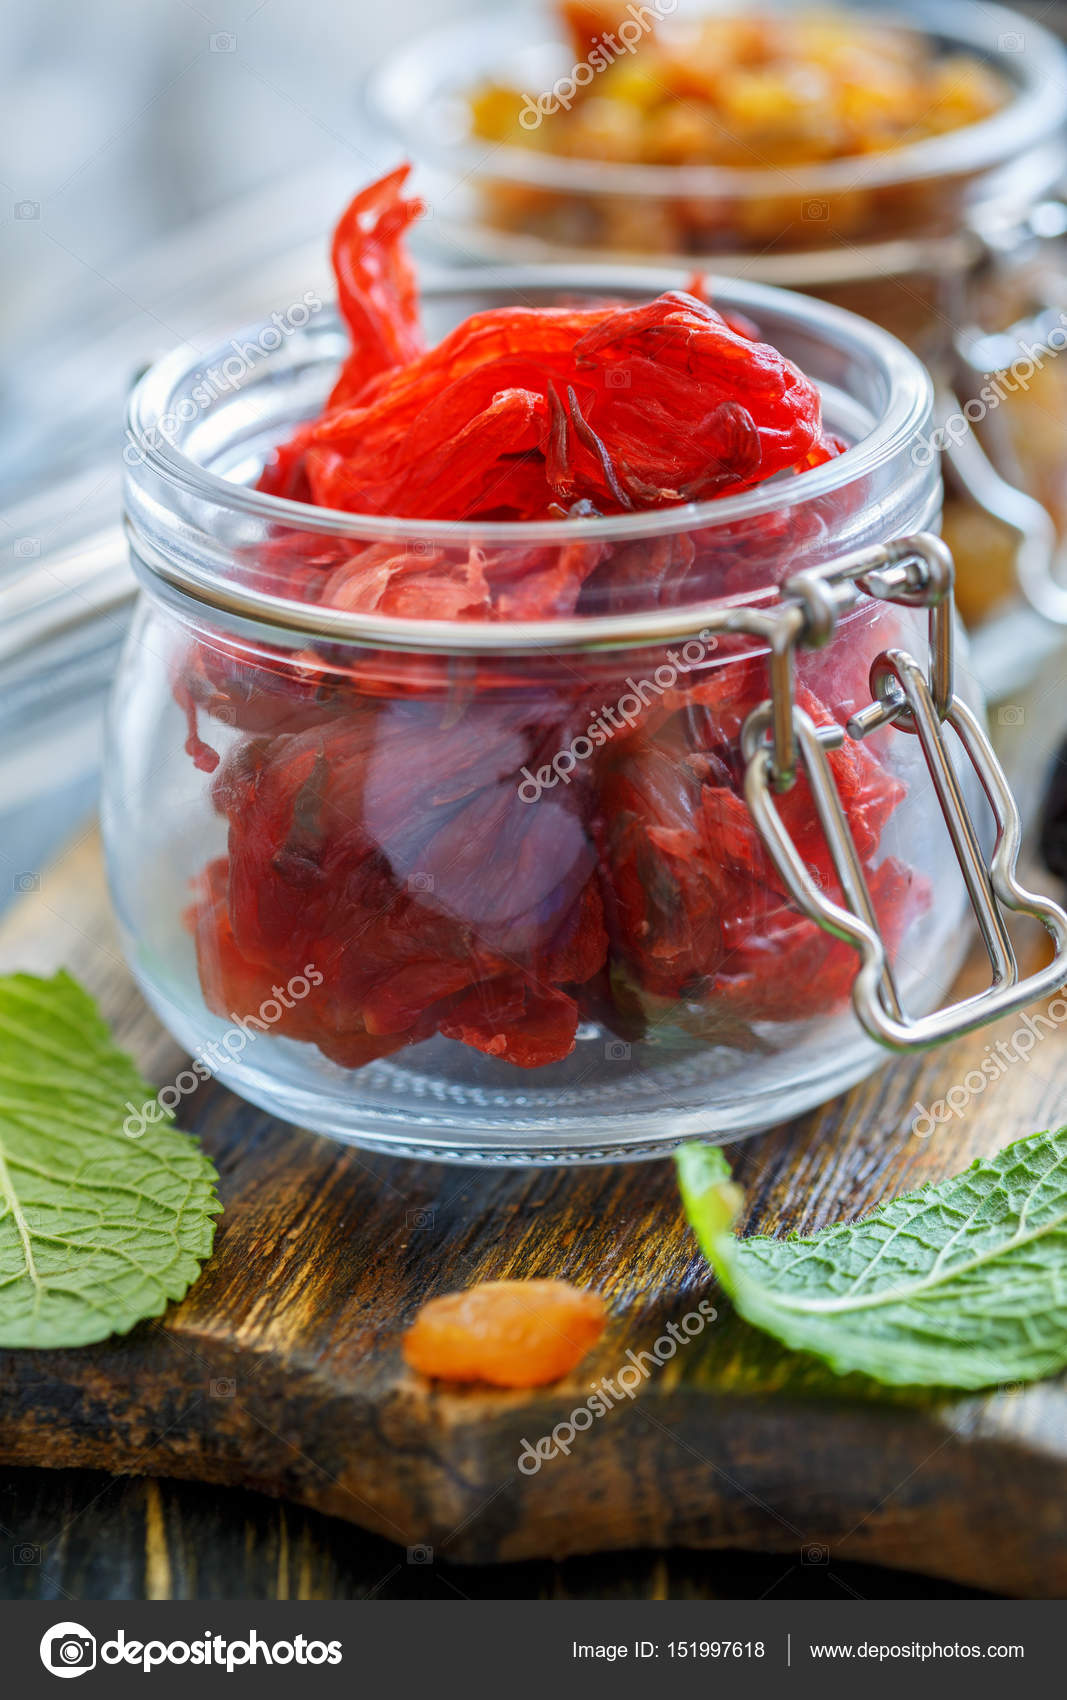 Dried hibiscus flowers in a glass jar stock photo sriba3 151997618 dried hibiscus flowers in a glass jar stock photo izmirmasajfo